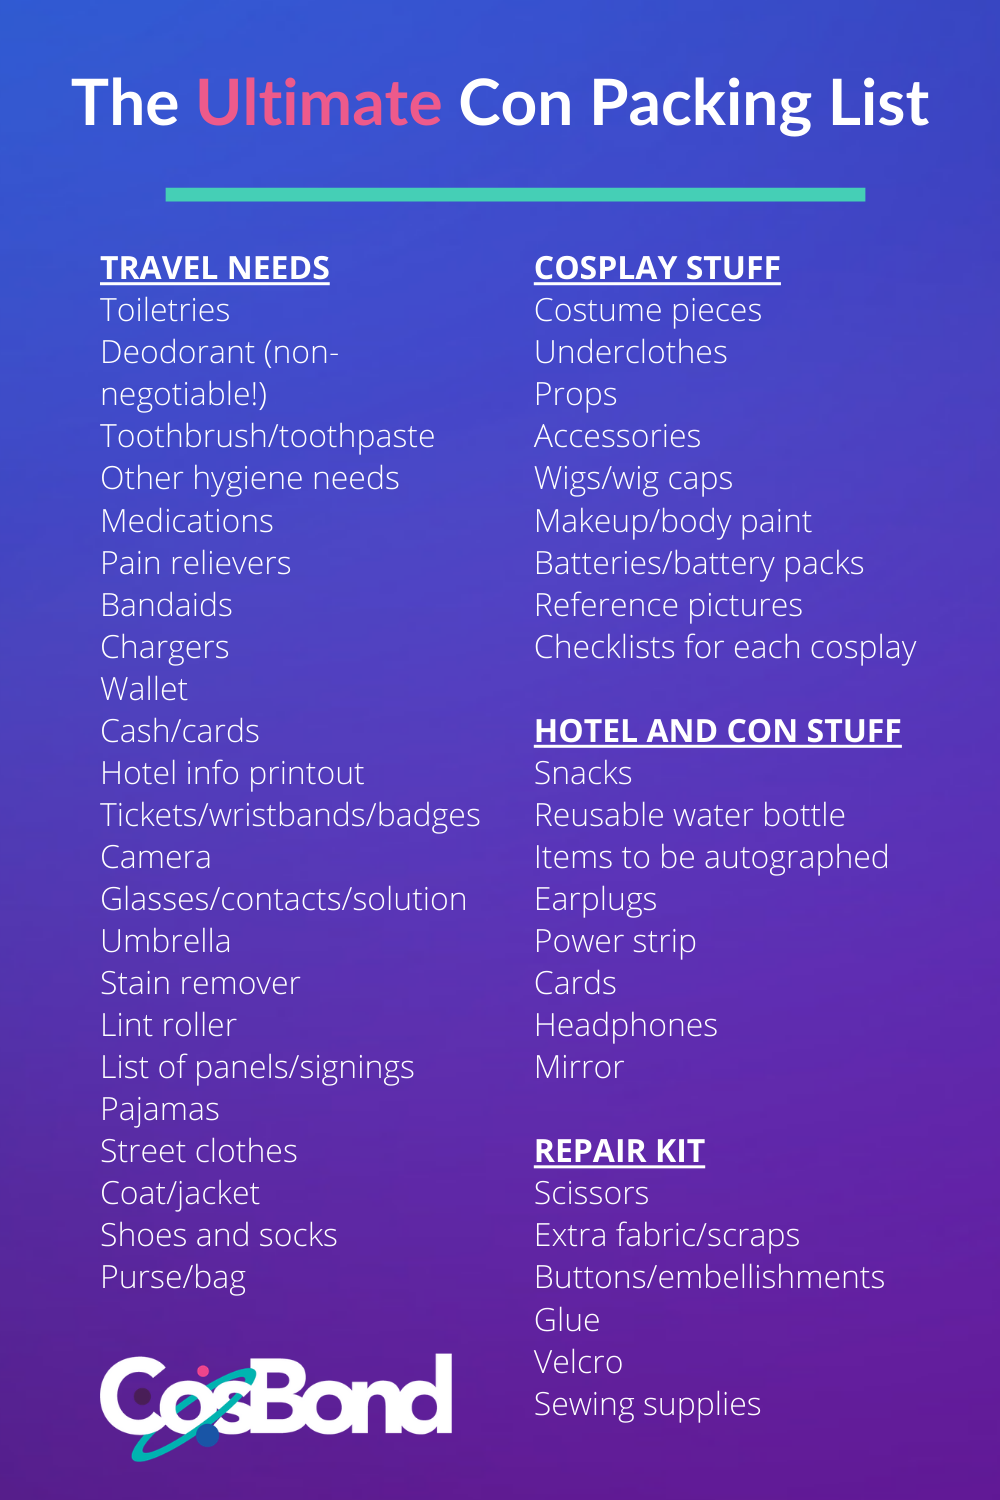 The Ultimate Con Packing List (1)